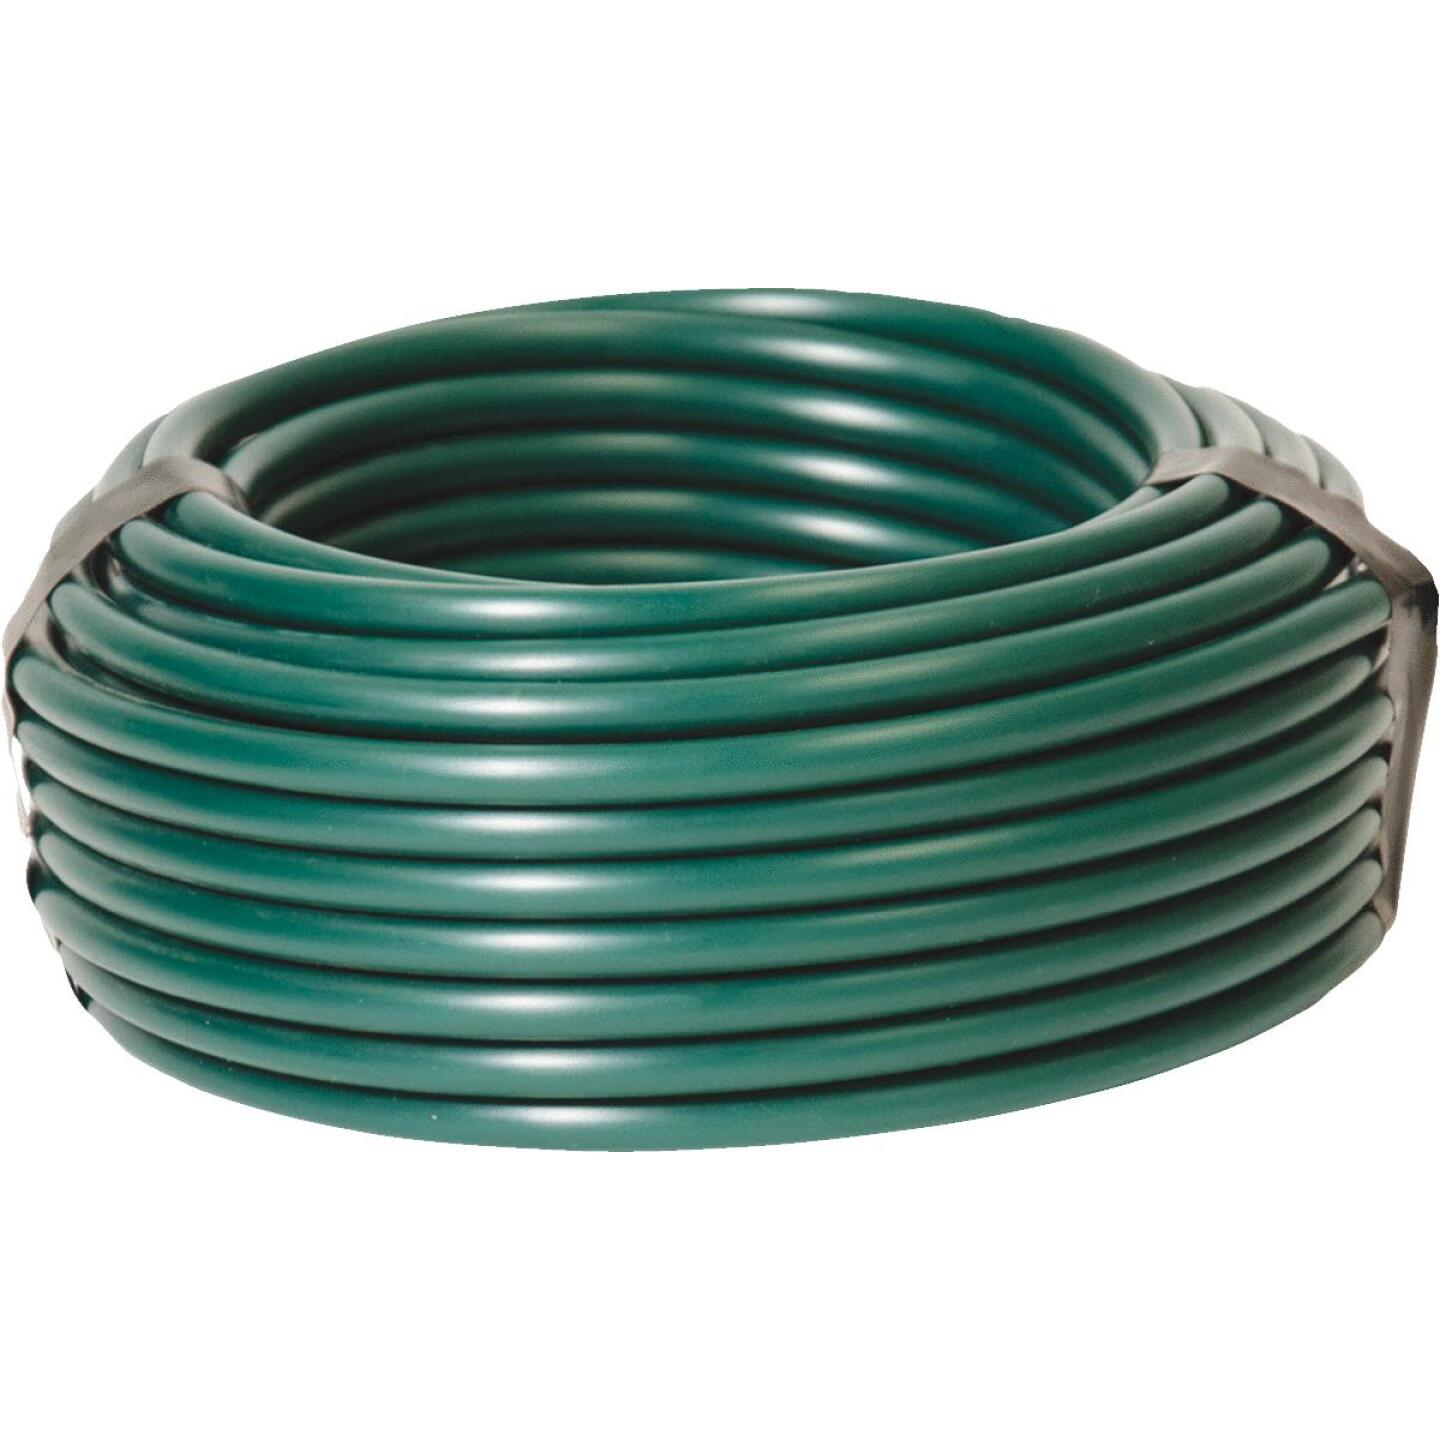 Raindrip 1/4 In. X 50 Ft. Green Poly Primary Drip Tubing Image 1